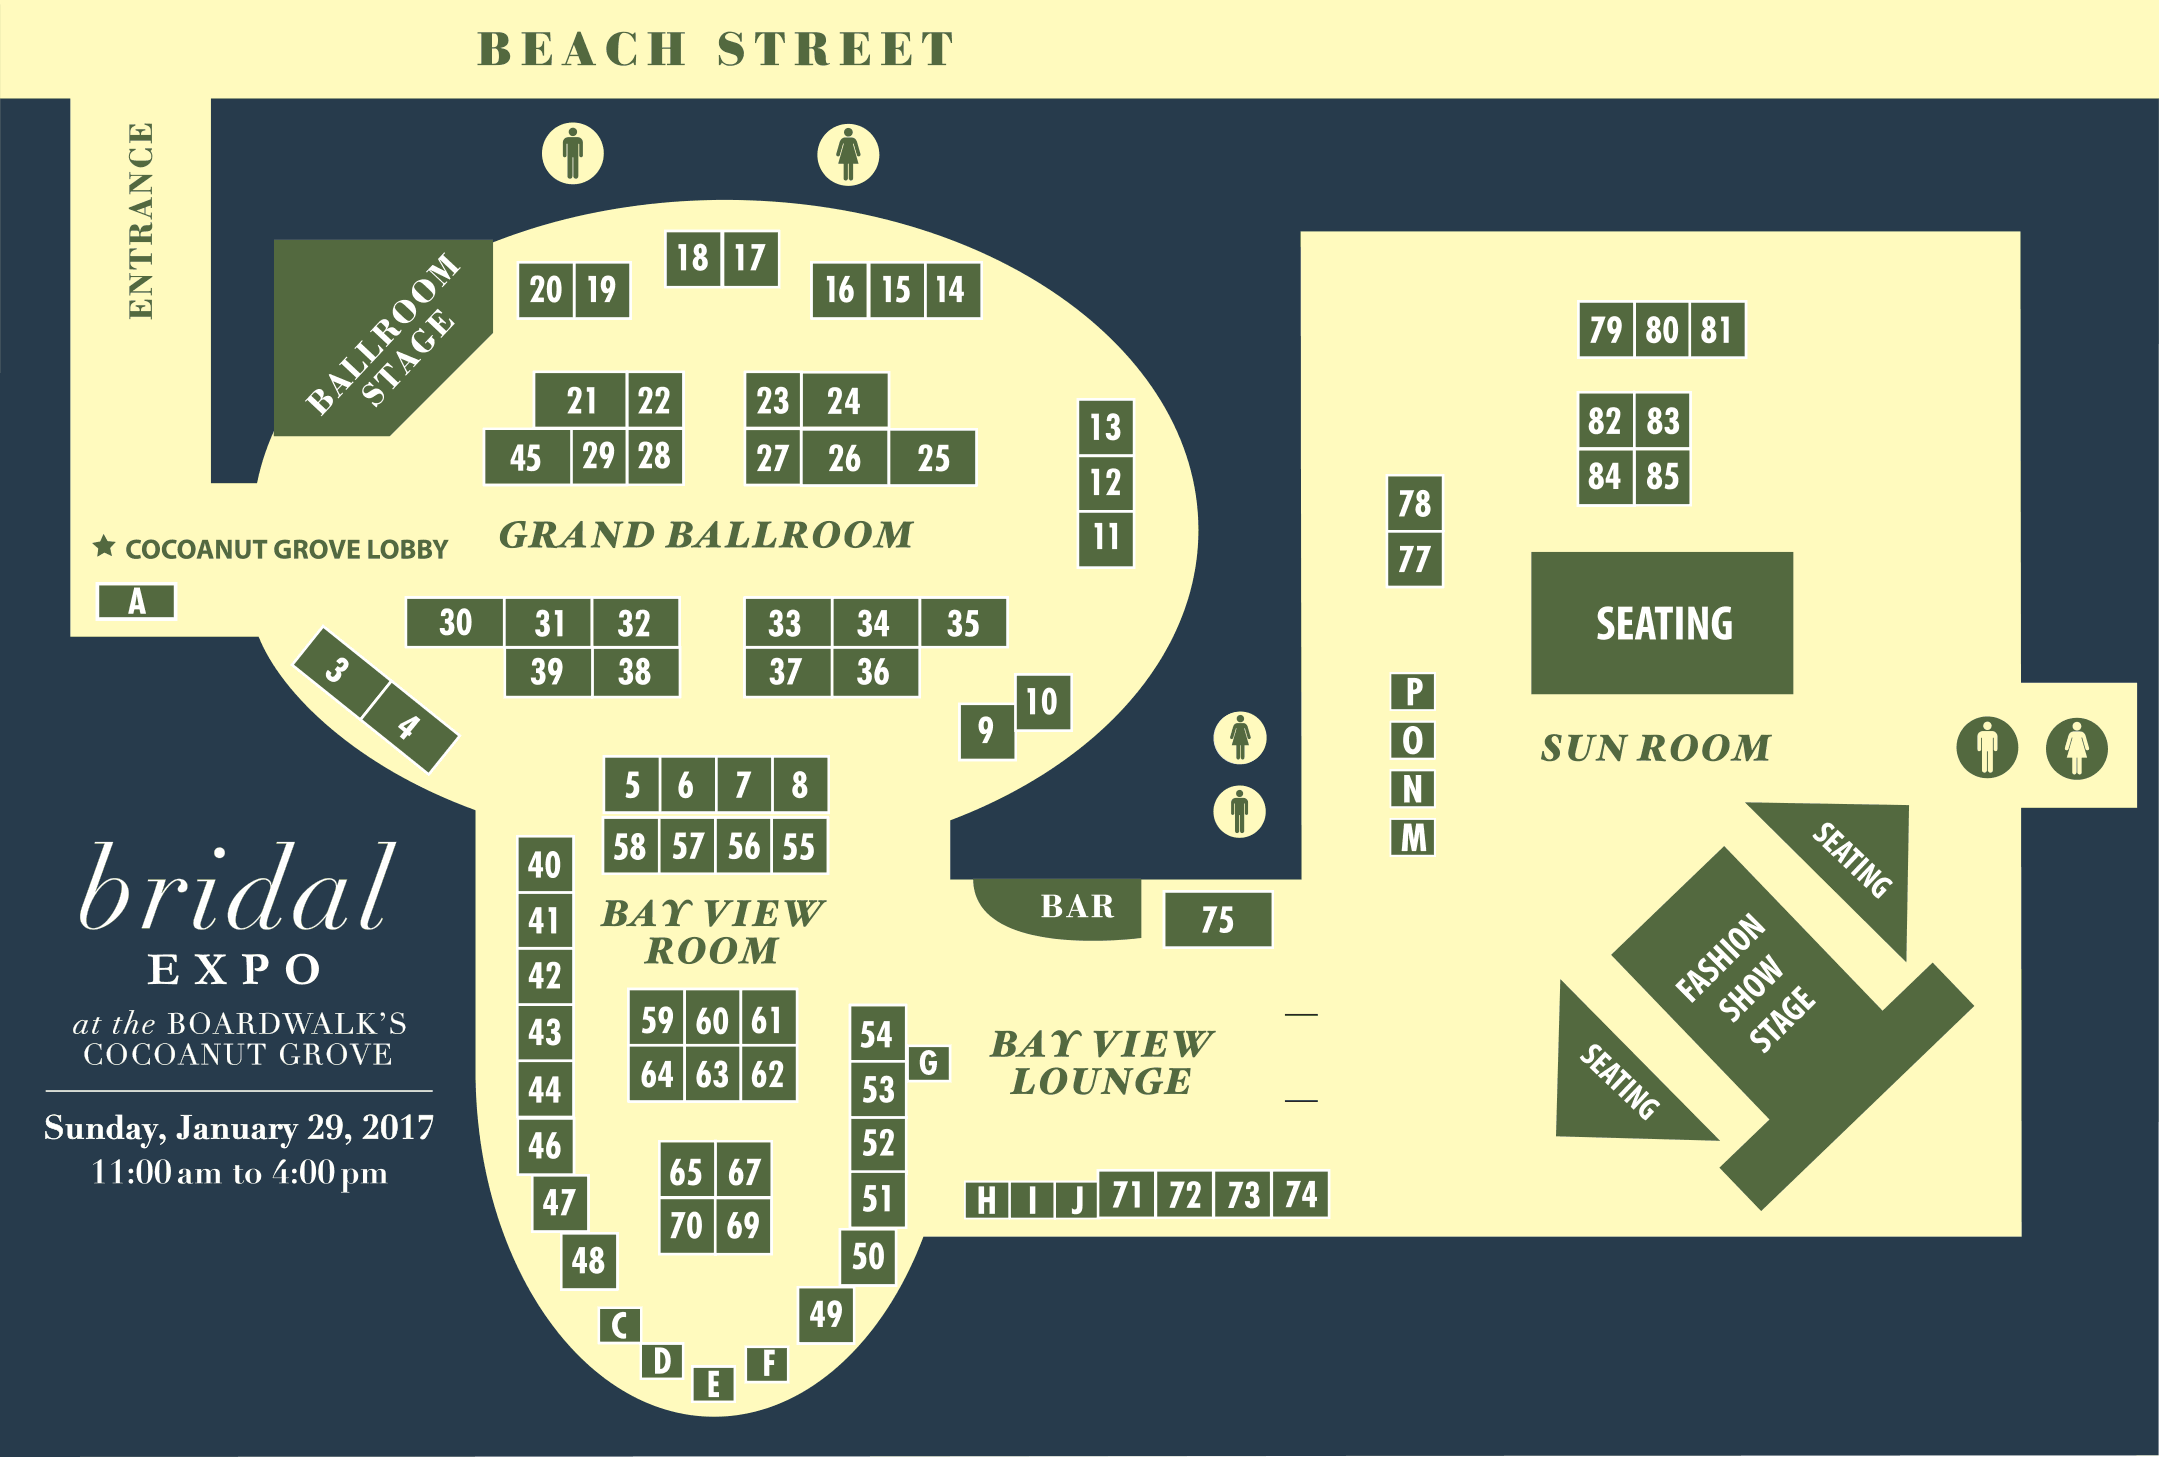 Bridal Expo Map